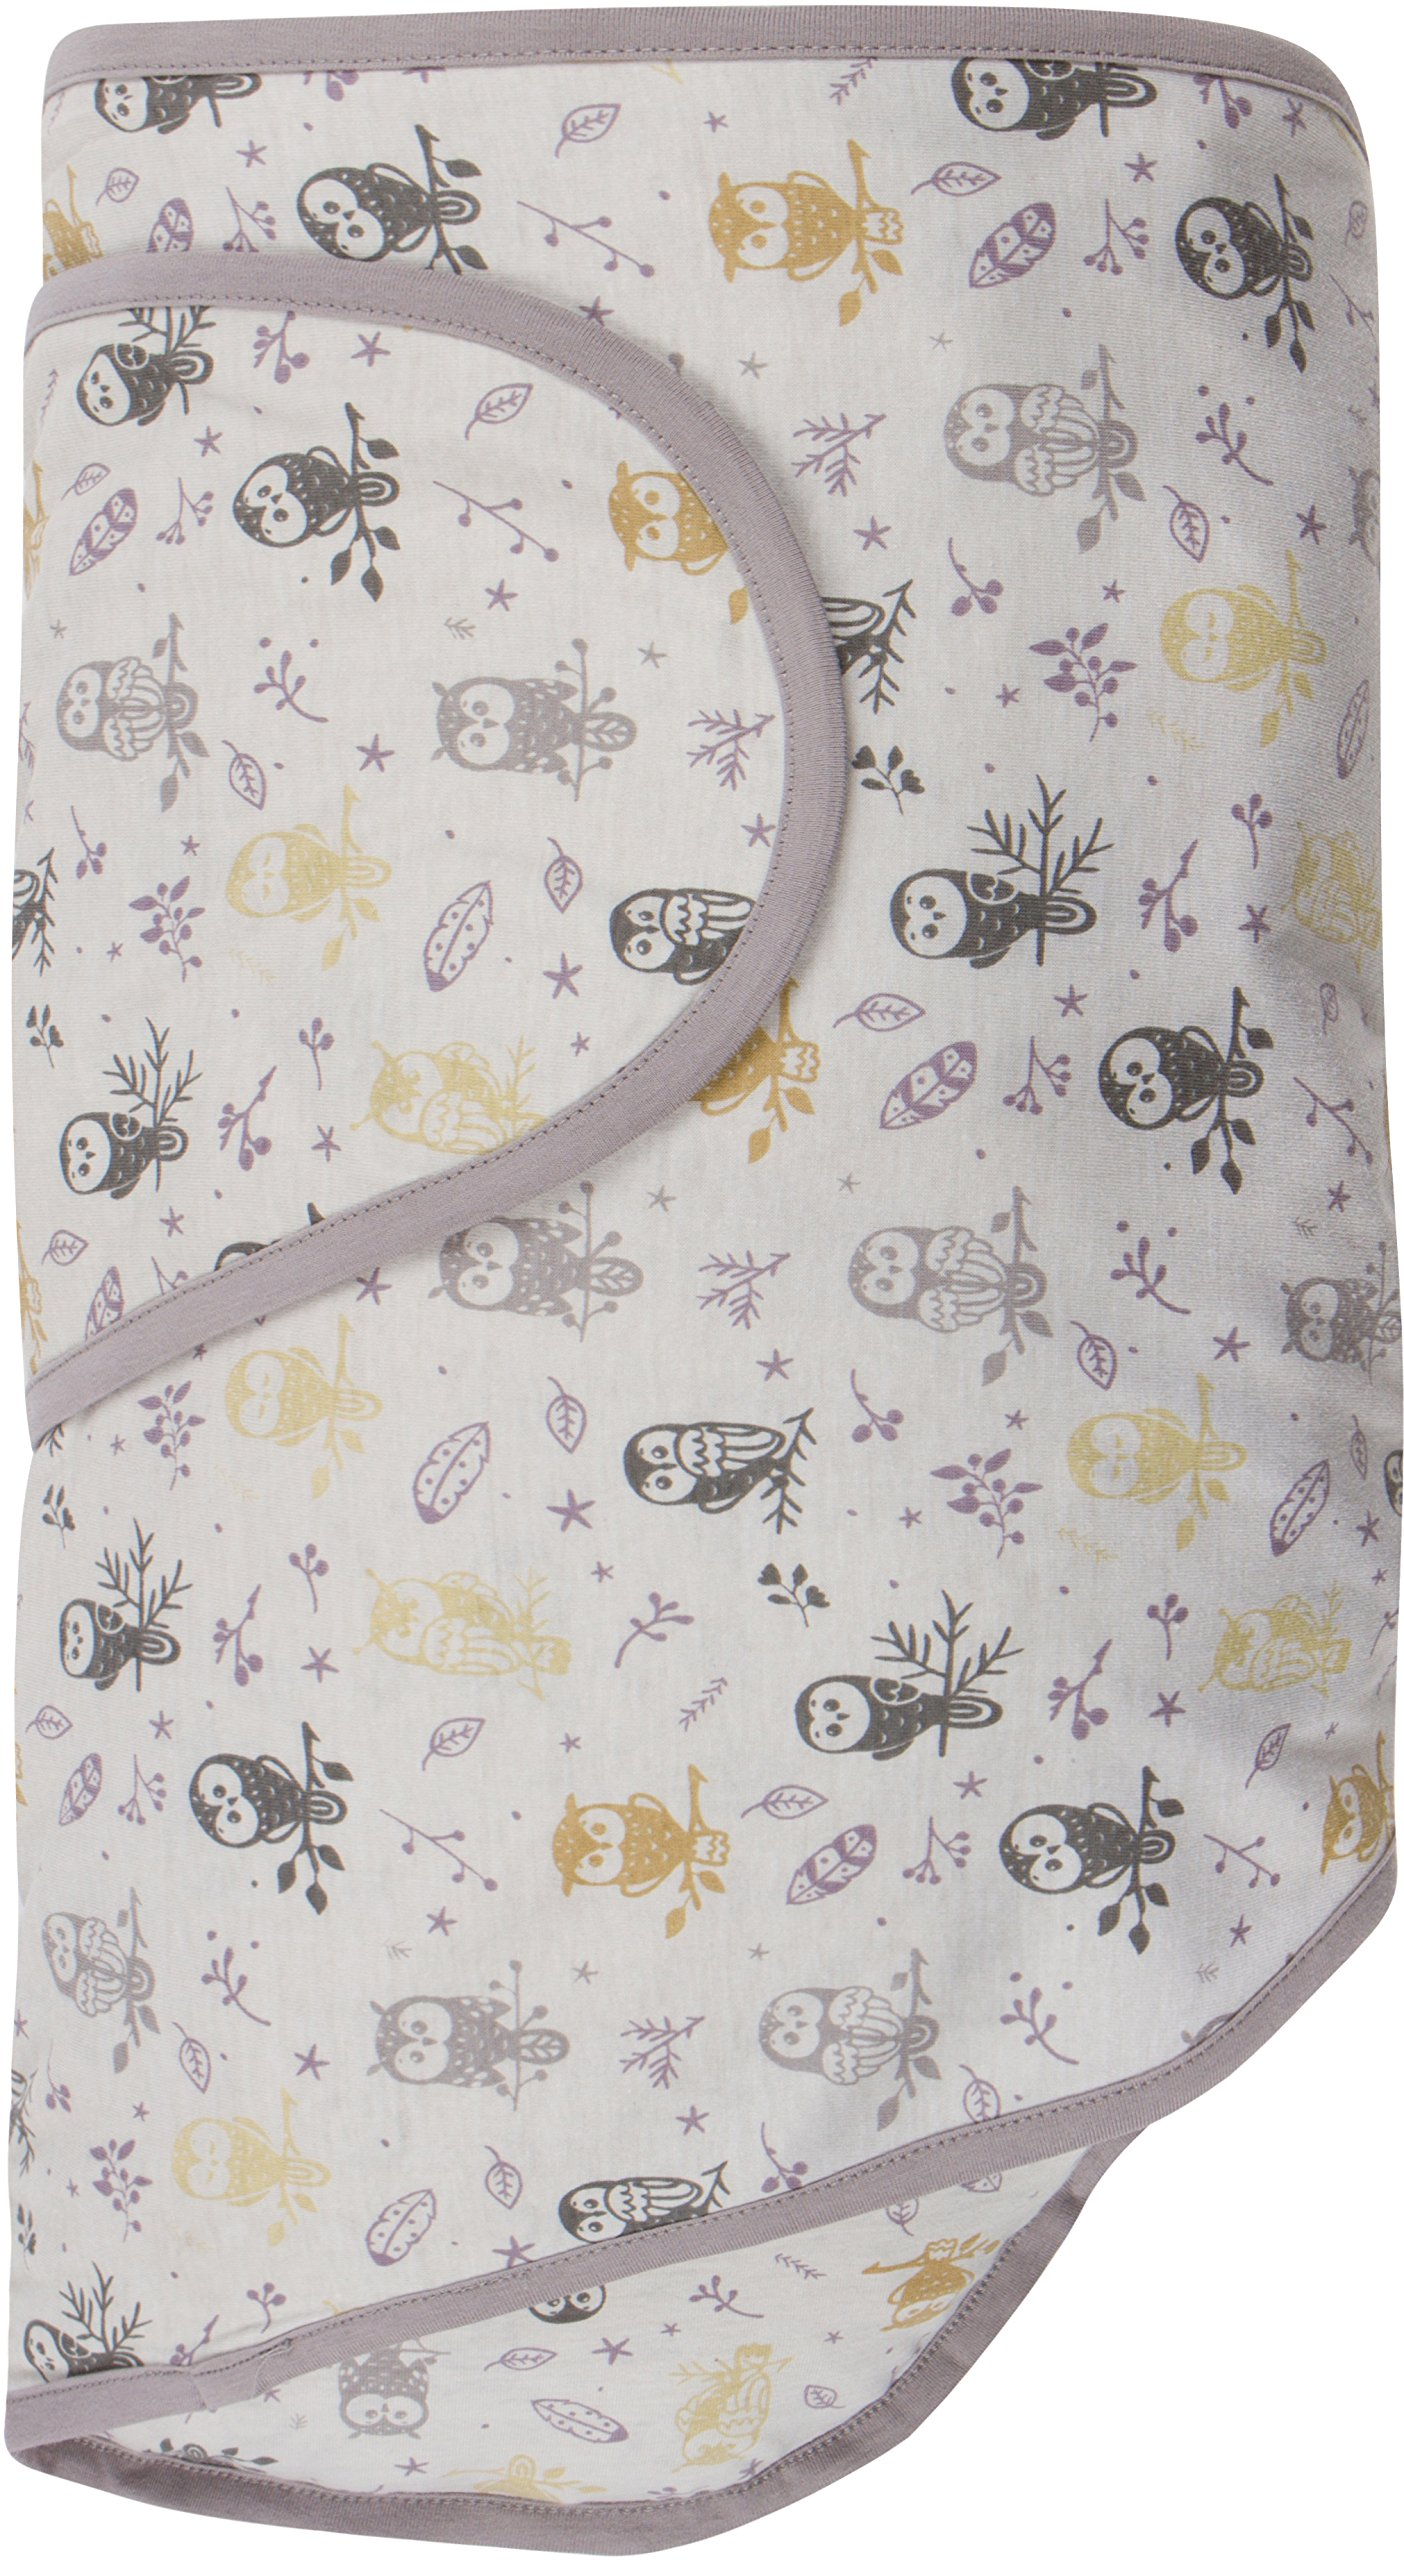 Miracle Blanket Swaddle Unisex Baby, Forest Owls, Newborn to 14 Weeks by Miracle Blanket